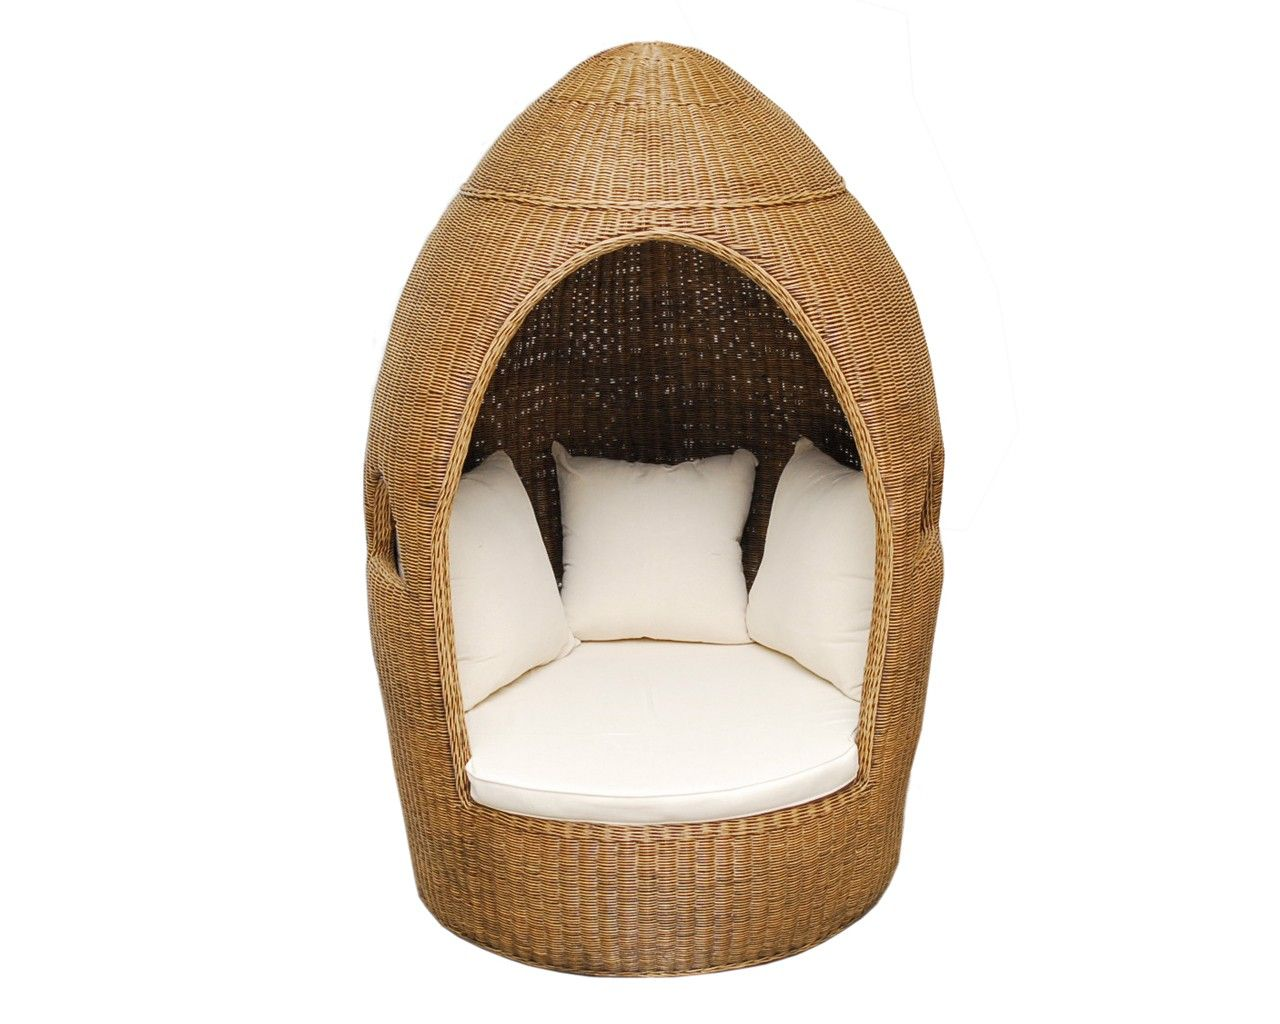 Egg Basket Chair This Impressive Egg Chair Is Hand Woven From Rattan And